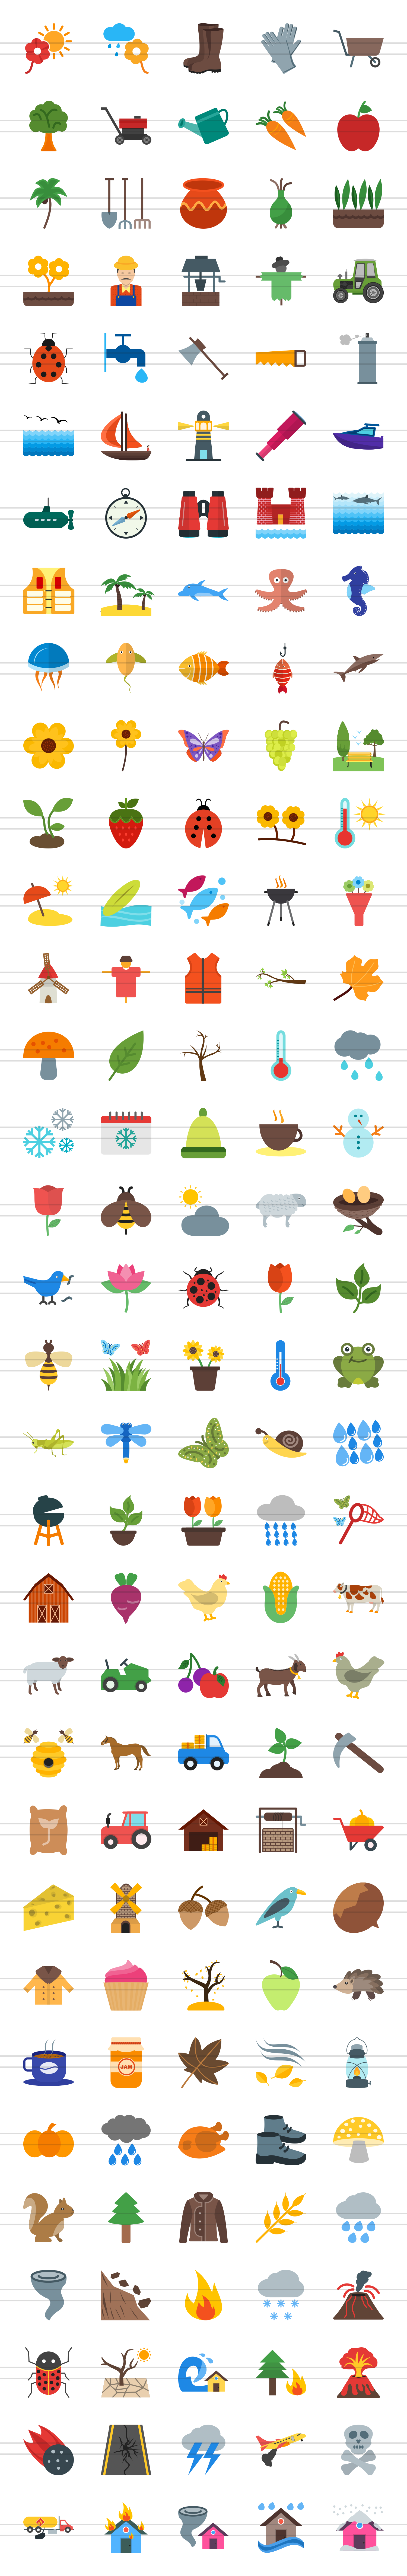 166 Nature & Outdoor Flat Icons example image 3